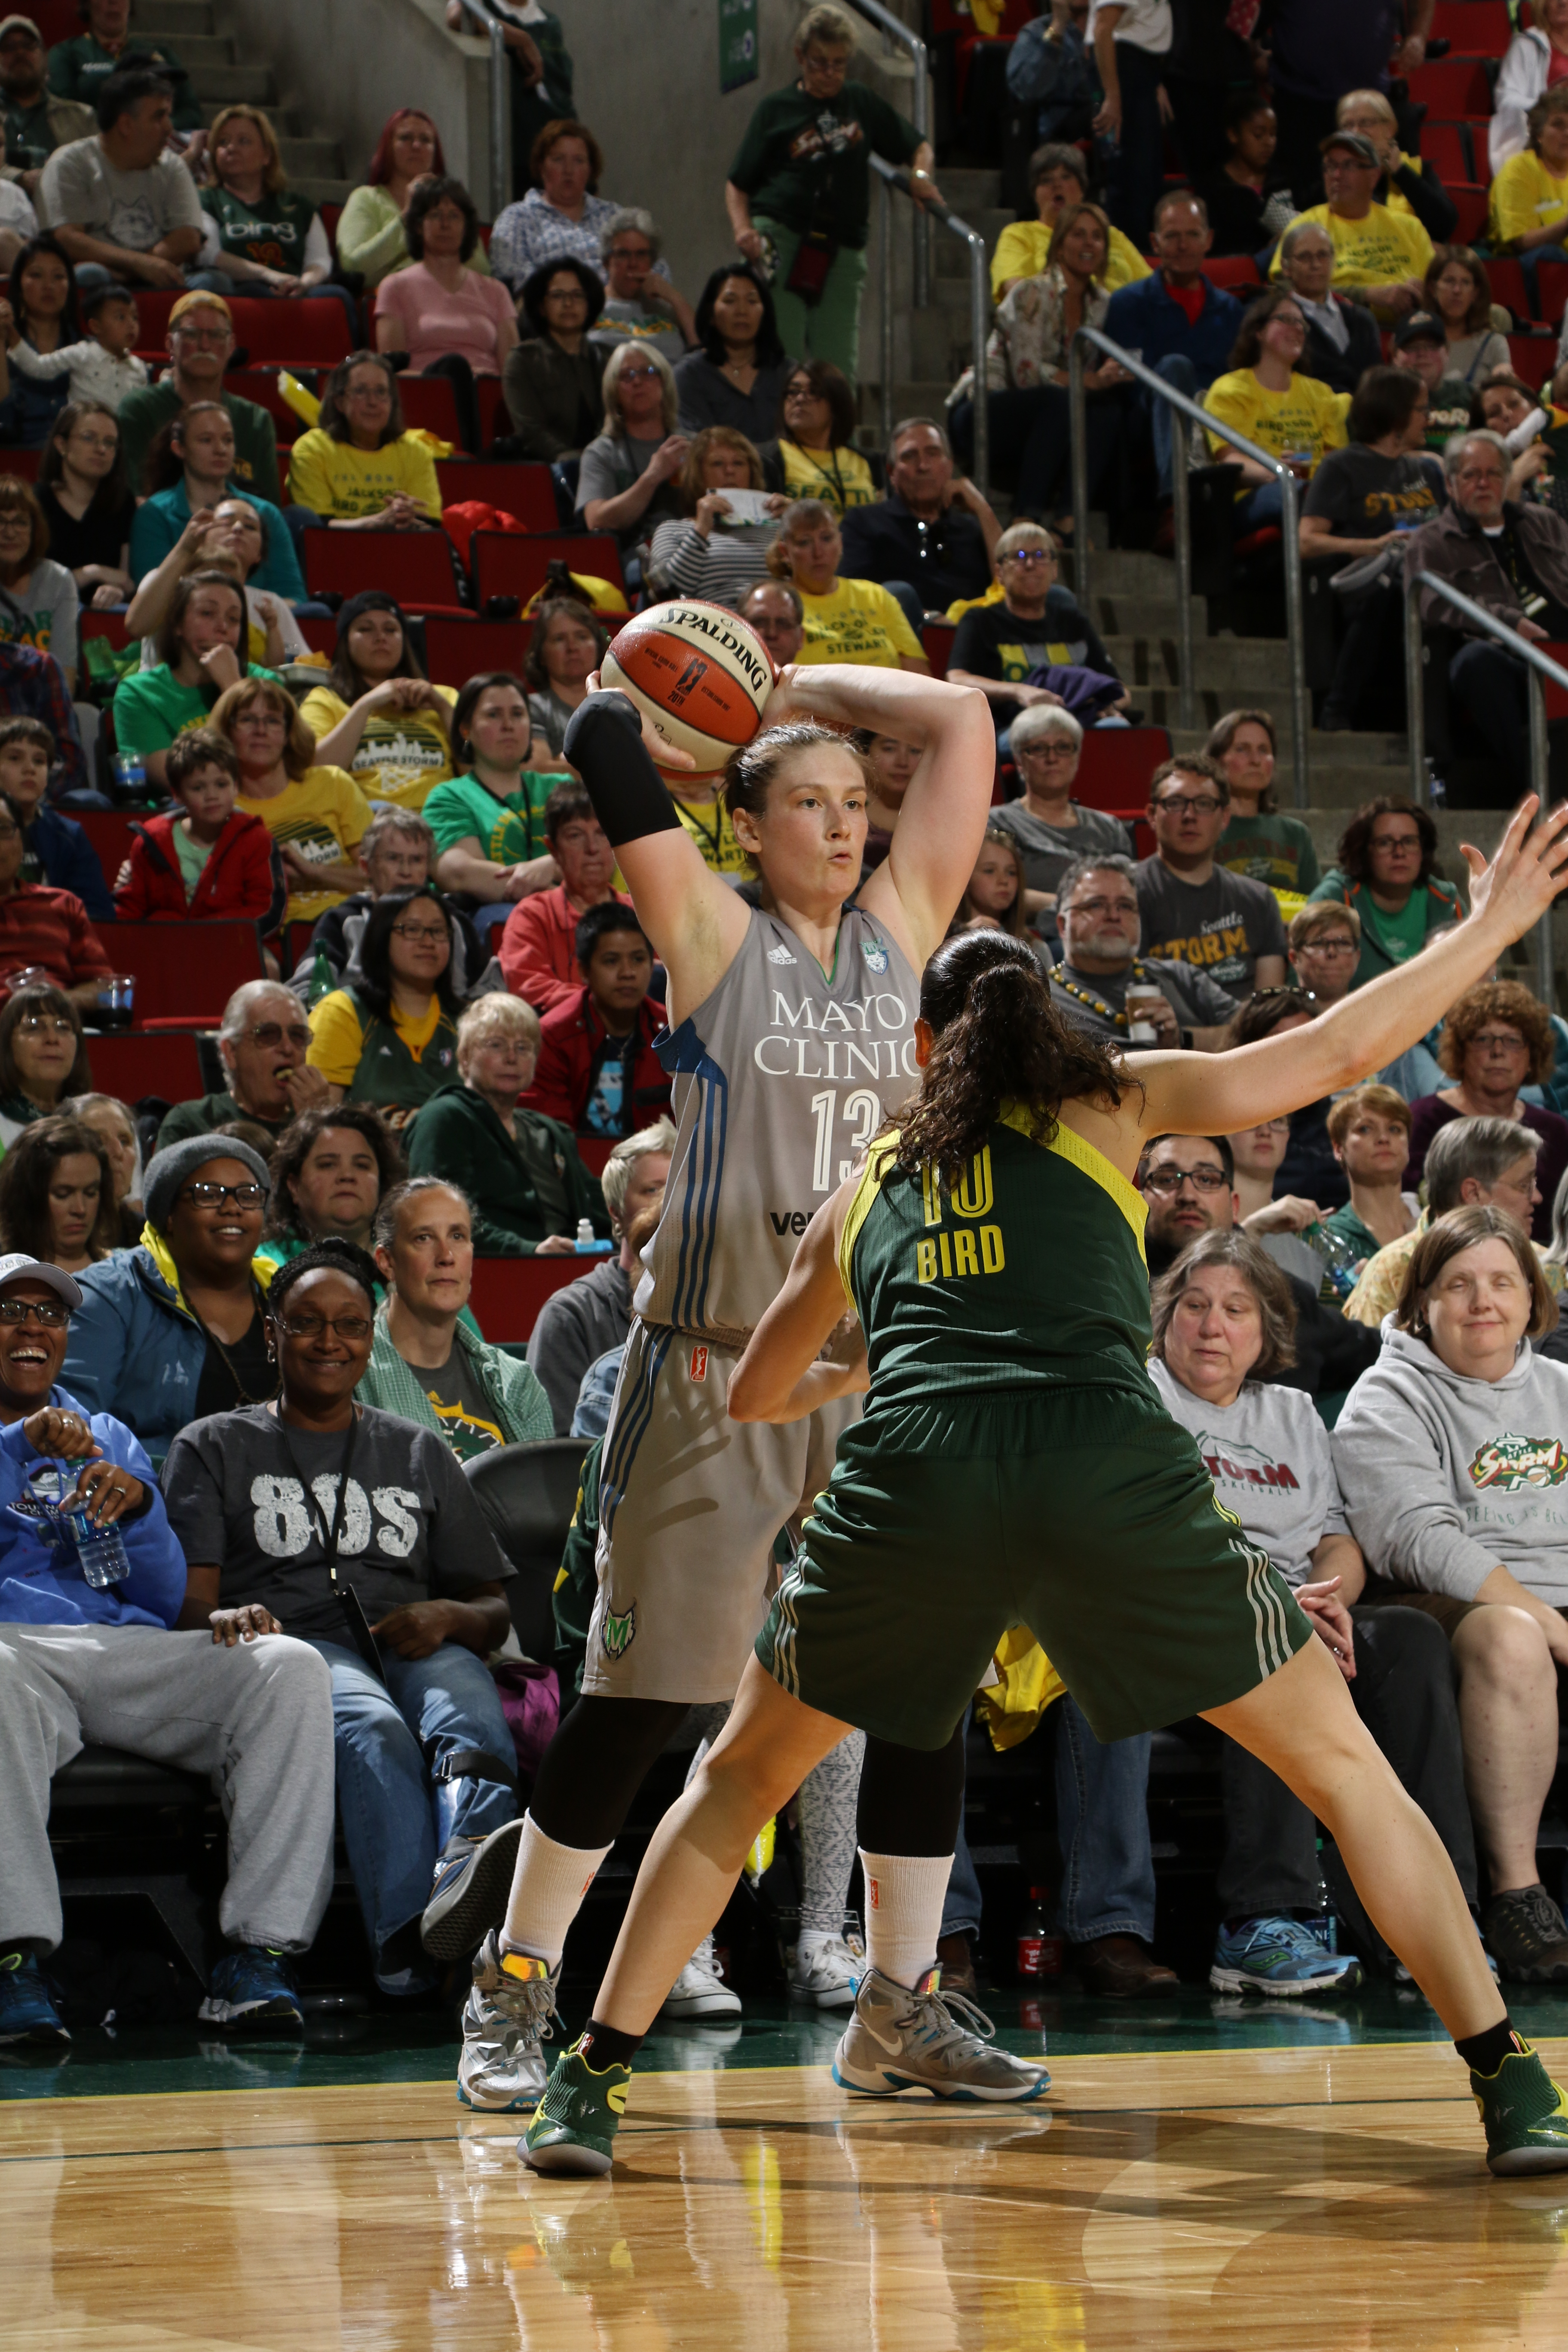 SEATTLE, WA - MAY 22:  Lindsay Whalen #13 of the Minnesota Lynx handles the ball against the Seattle Storm on May 22, 2016 at KeyArena in Seattle, Washington. NOTE TO USER: User expressly acknowledges and agrees that, by downloading and or using this photograph, user is consenting to the terms and conditions of Getty Images License Agreement. Mandatory Copyright Notice: Copyright 2016 NBAE (Photo by Josh Huston/NBAE via Getty Images)